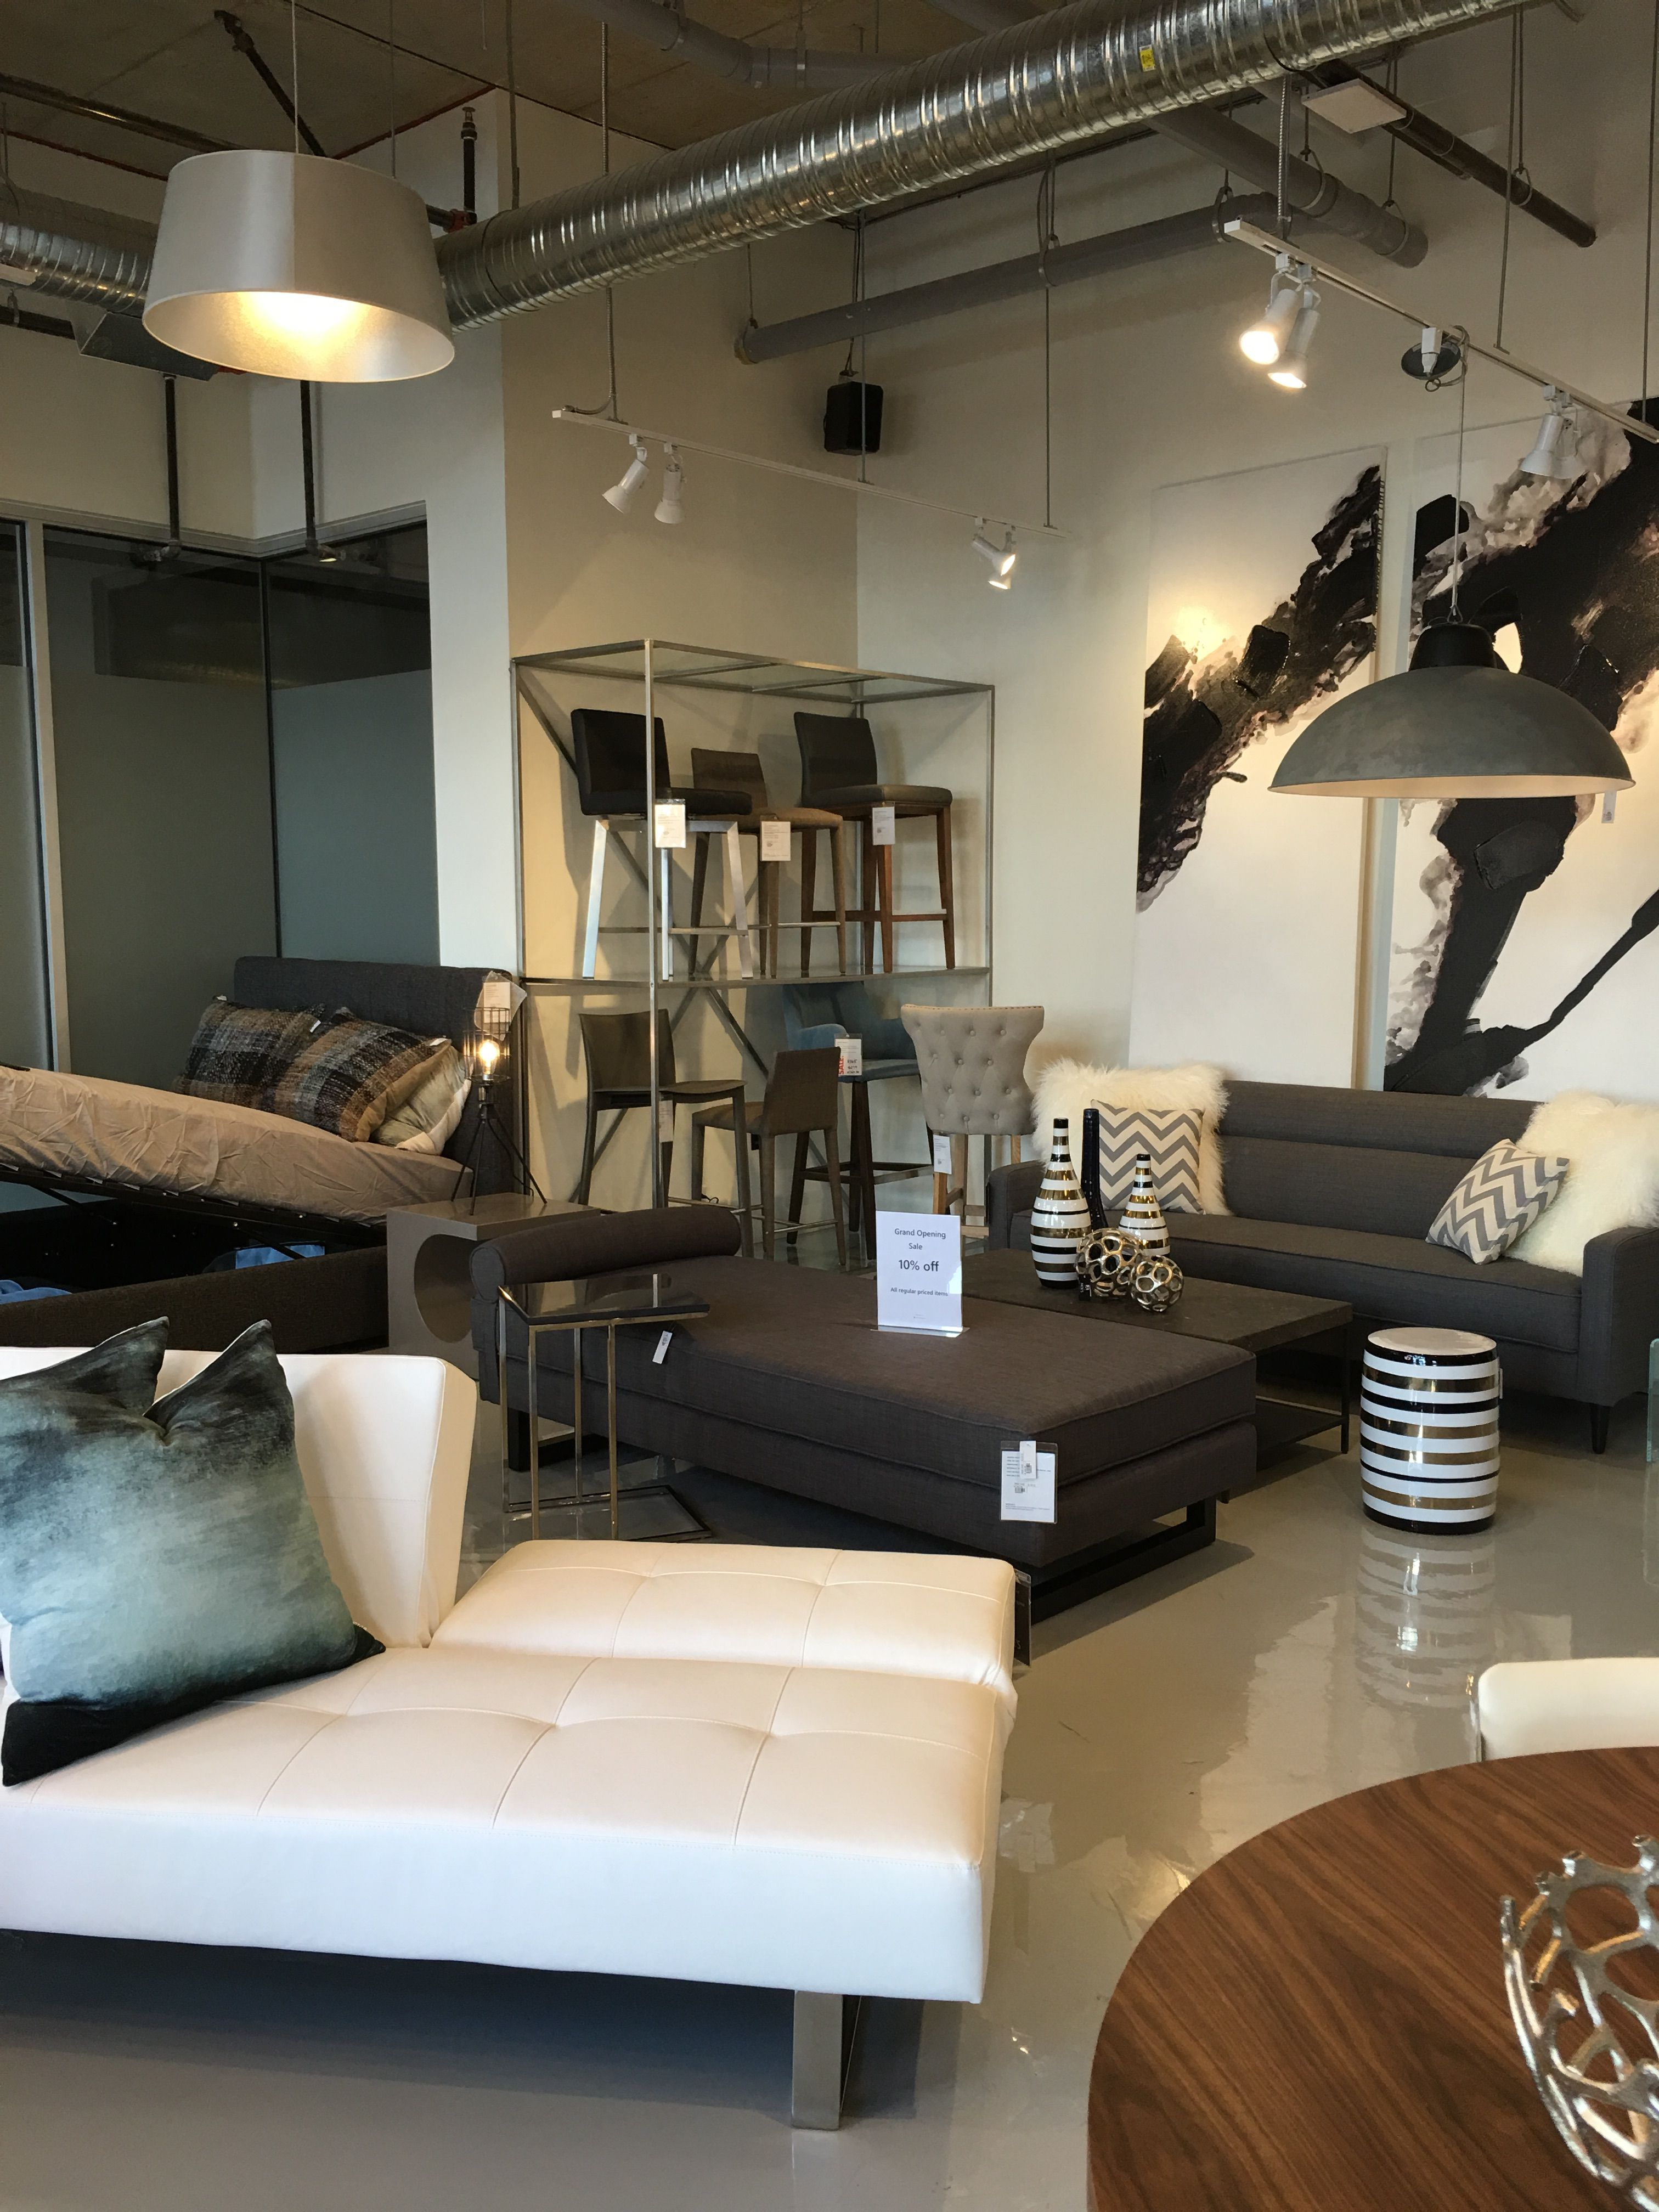 Photo Of Furniture Store In Victoria Bc I Like The Colors White With Grays And Muted Colors Furniture Furniture Store Dental Office Design